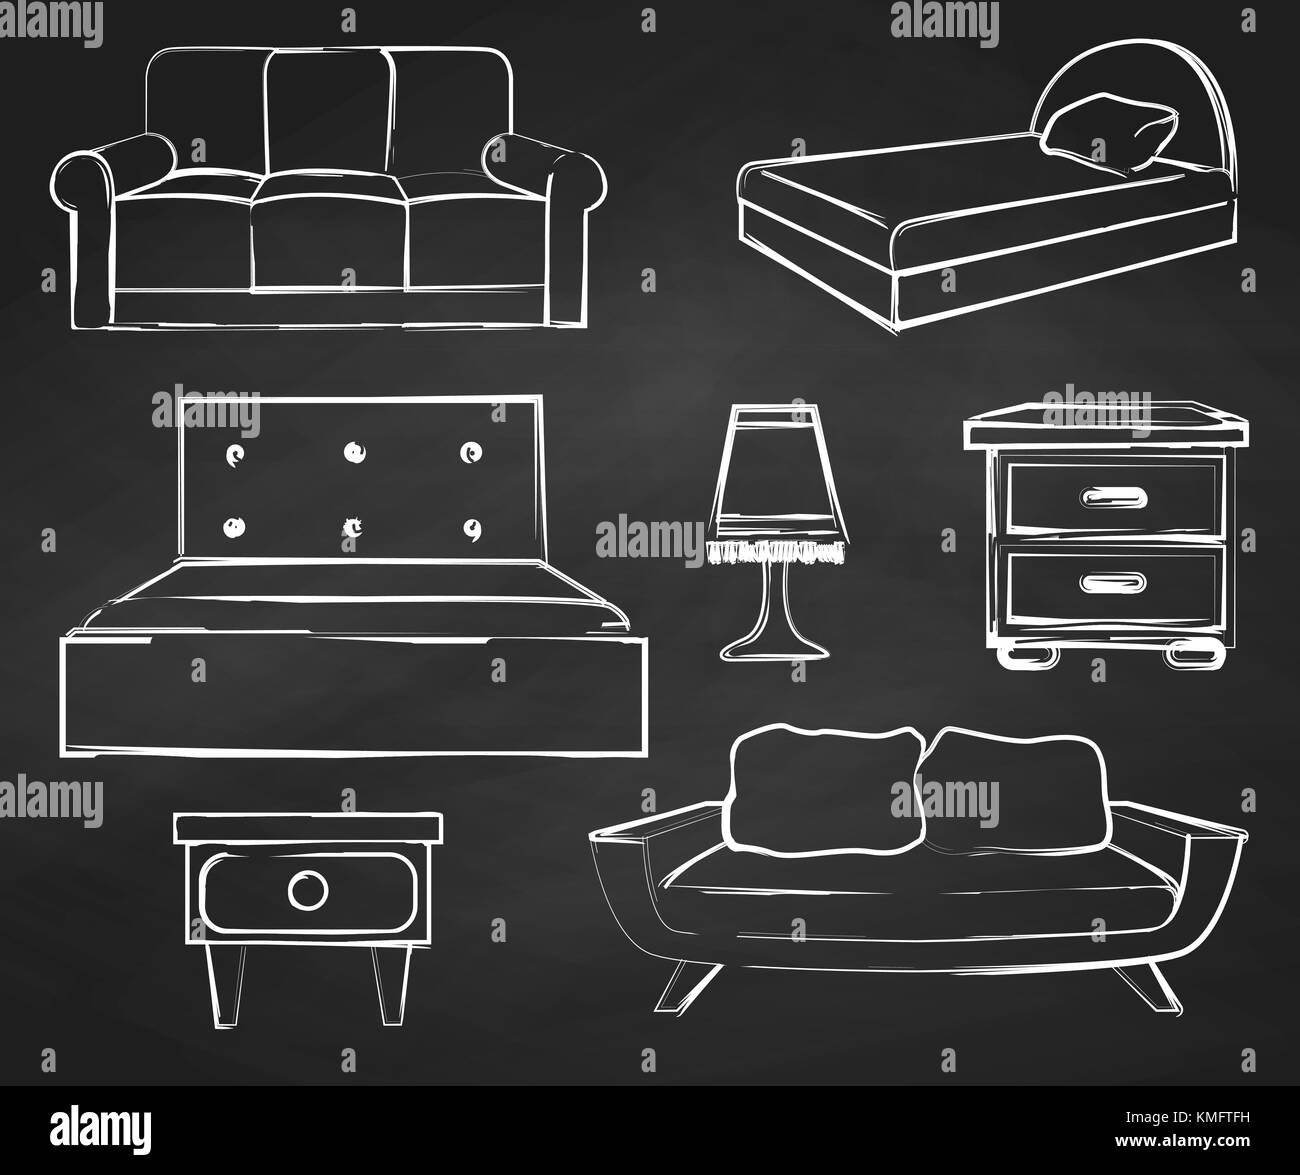 Sketch Set Isolated Furniture. Drawn Chalk On A Chalkboard.Vector  Illustration In A Sketch Style.